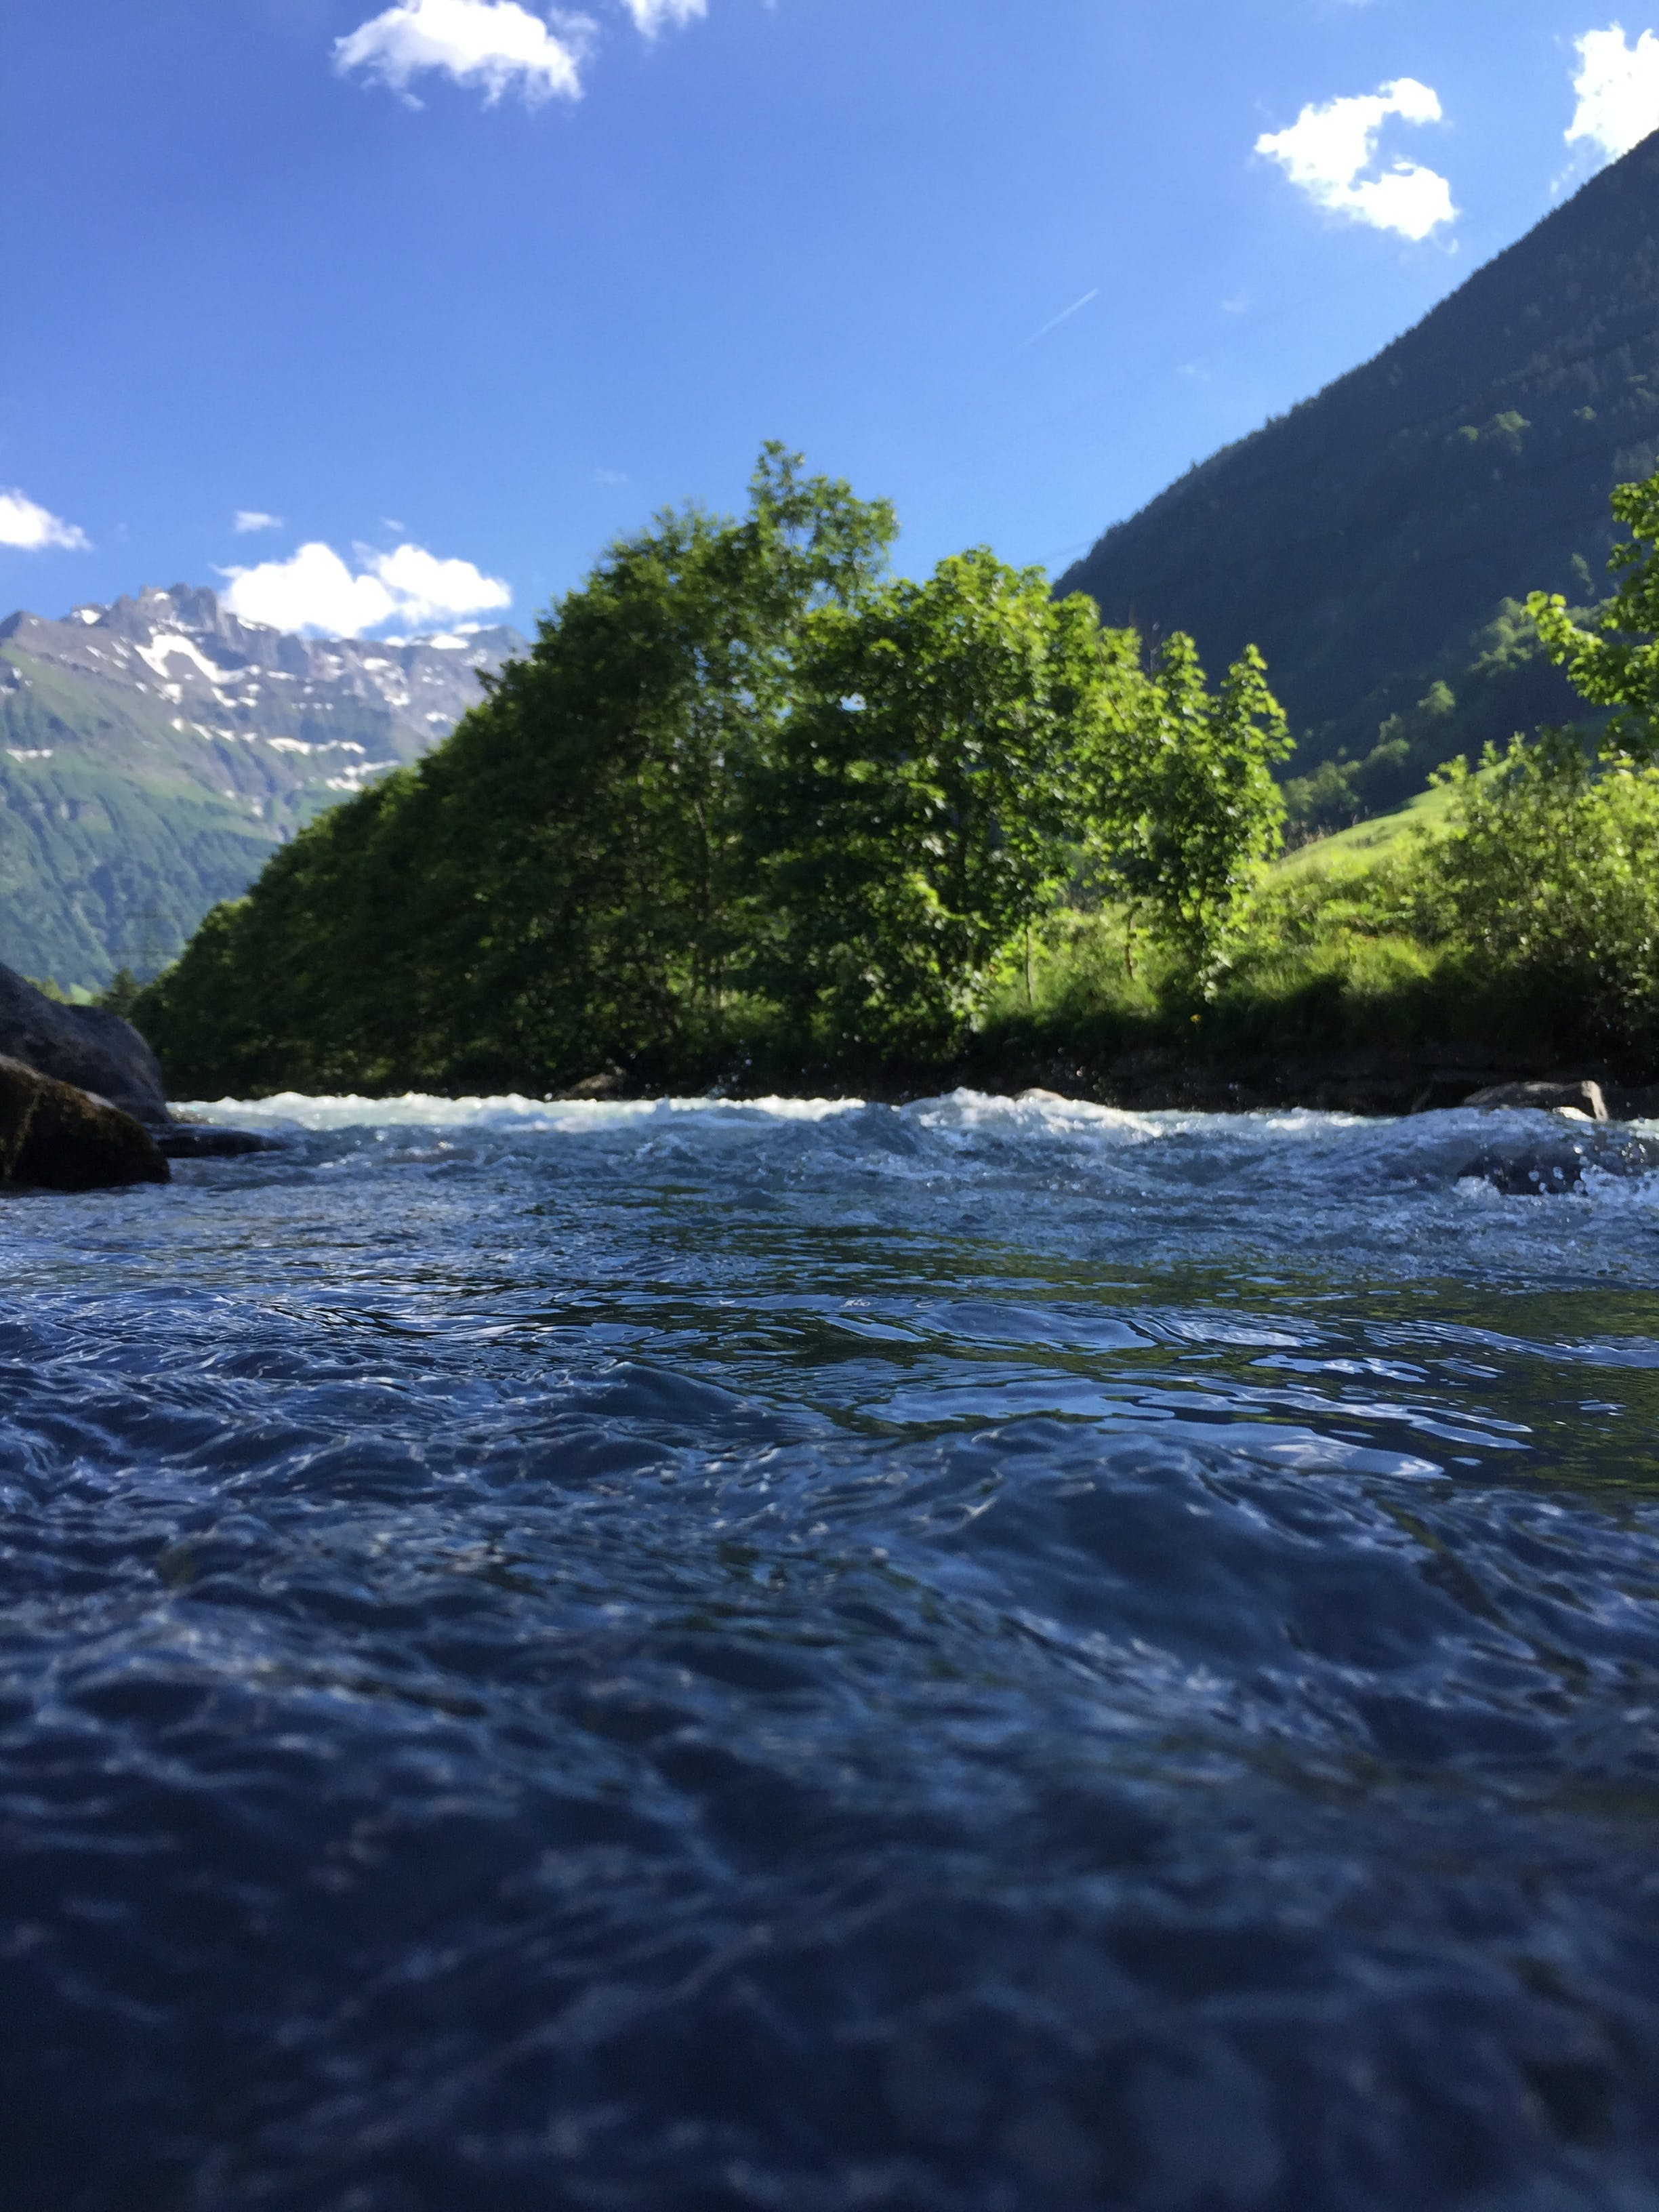 Free stock photo of blue water, mountain, nature, river